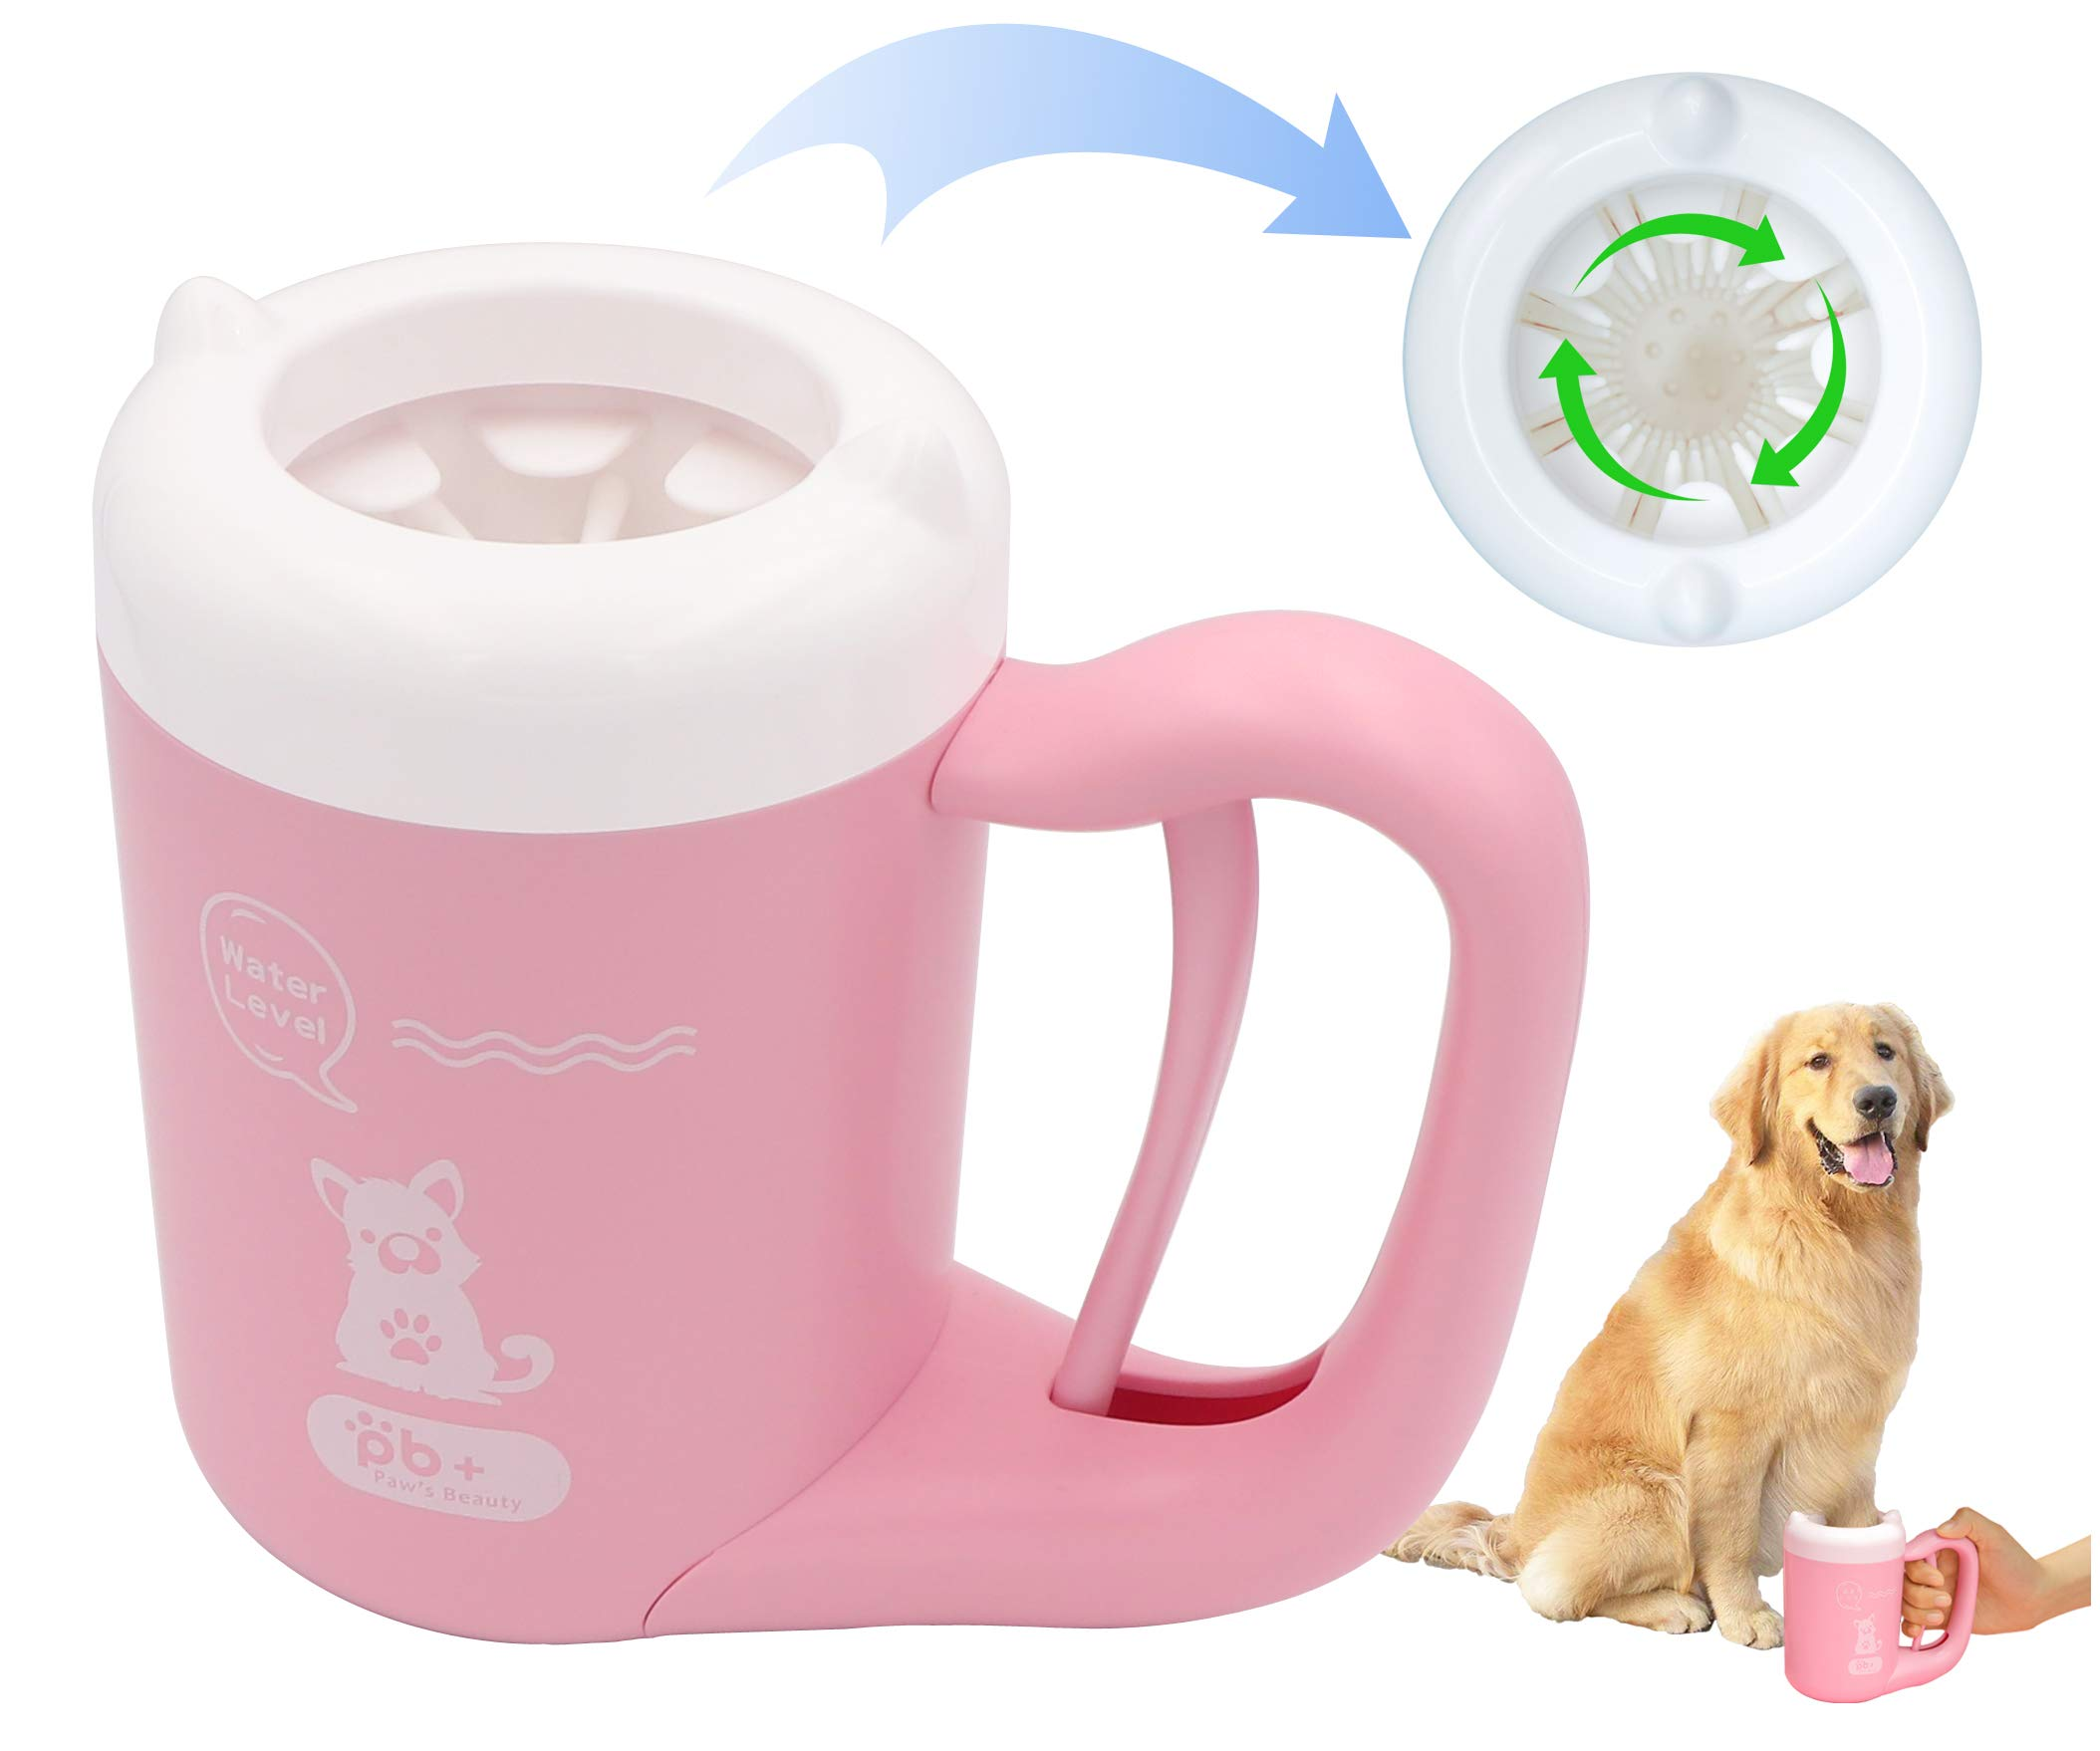 SenYiHo Rotatable Paw Cleaner for Pets Paw Washer Cup for Dog and Cat Puppy Dirty Muddy Feet Cleaner Rotatable Soft Silicone Brush Comfortable and Convenient No More Paw Prints(S Pink)